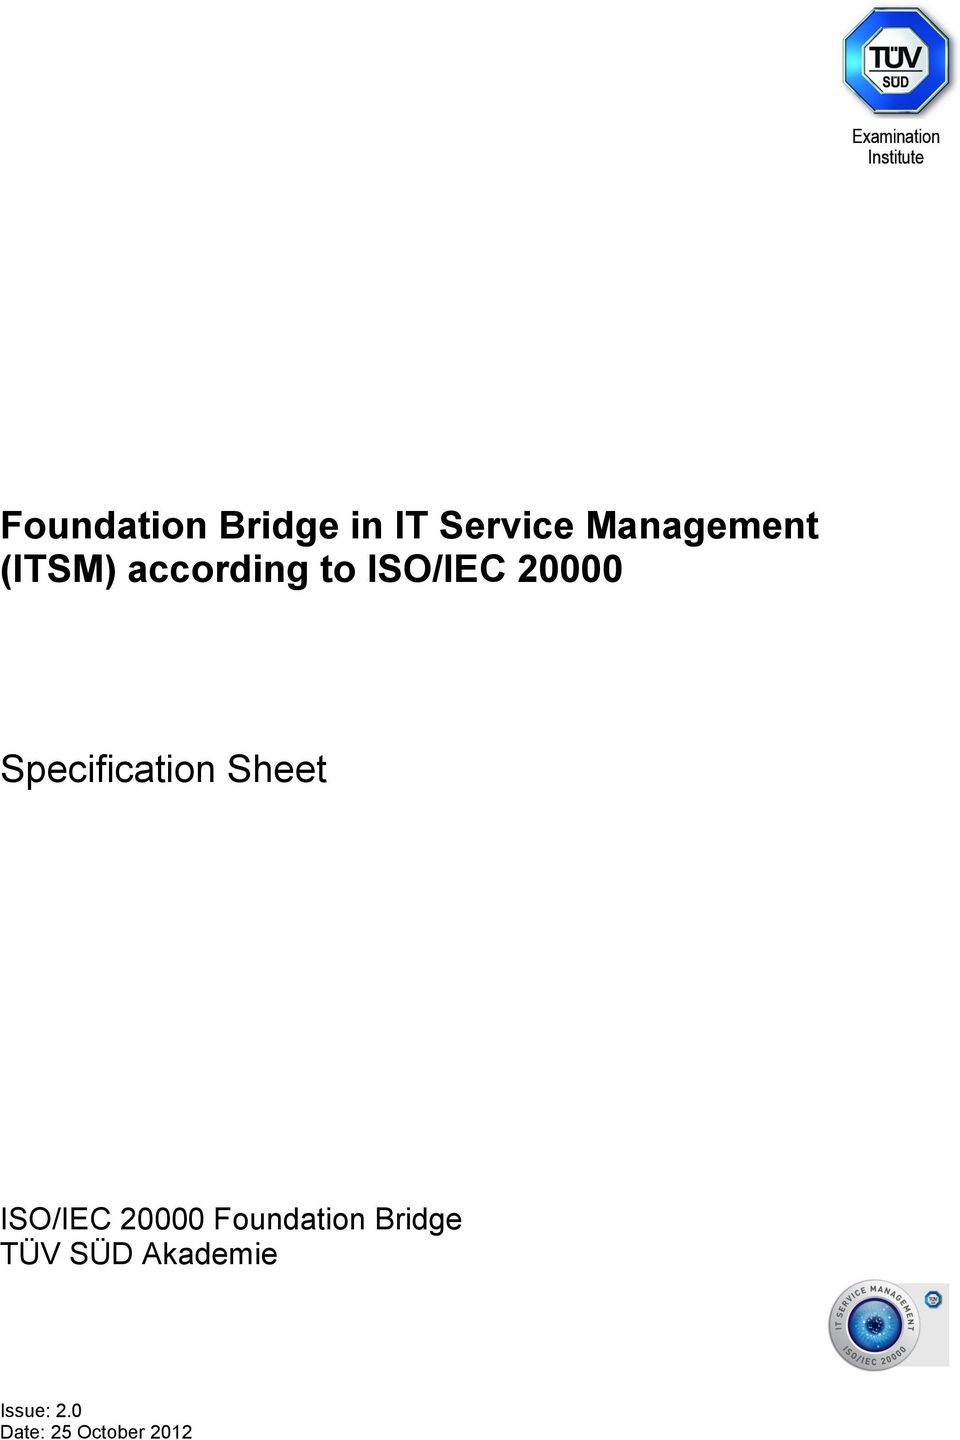 ISO/IEC 20000 Specification Sheet